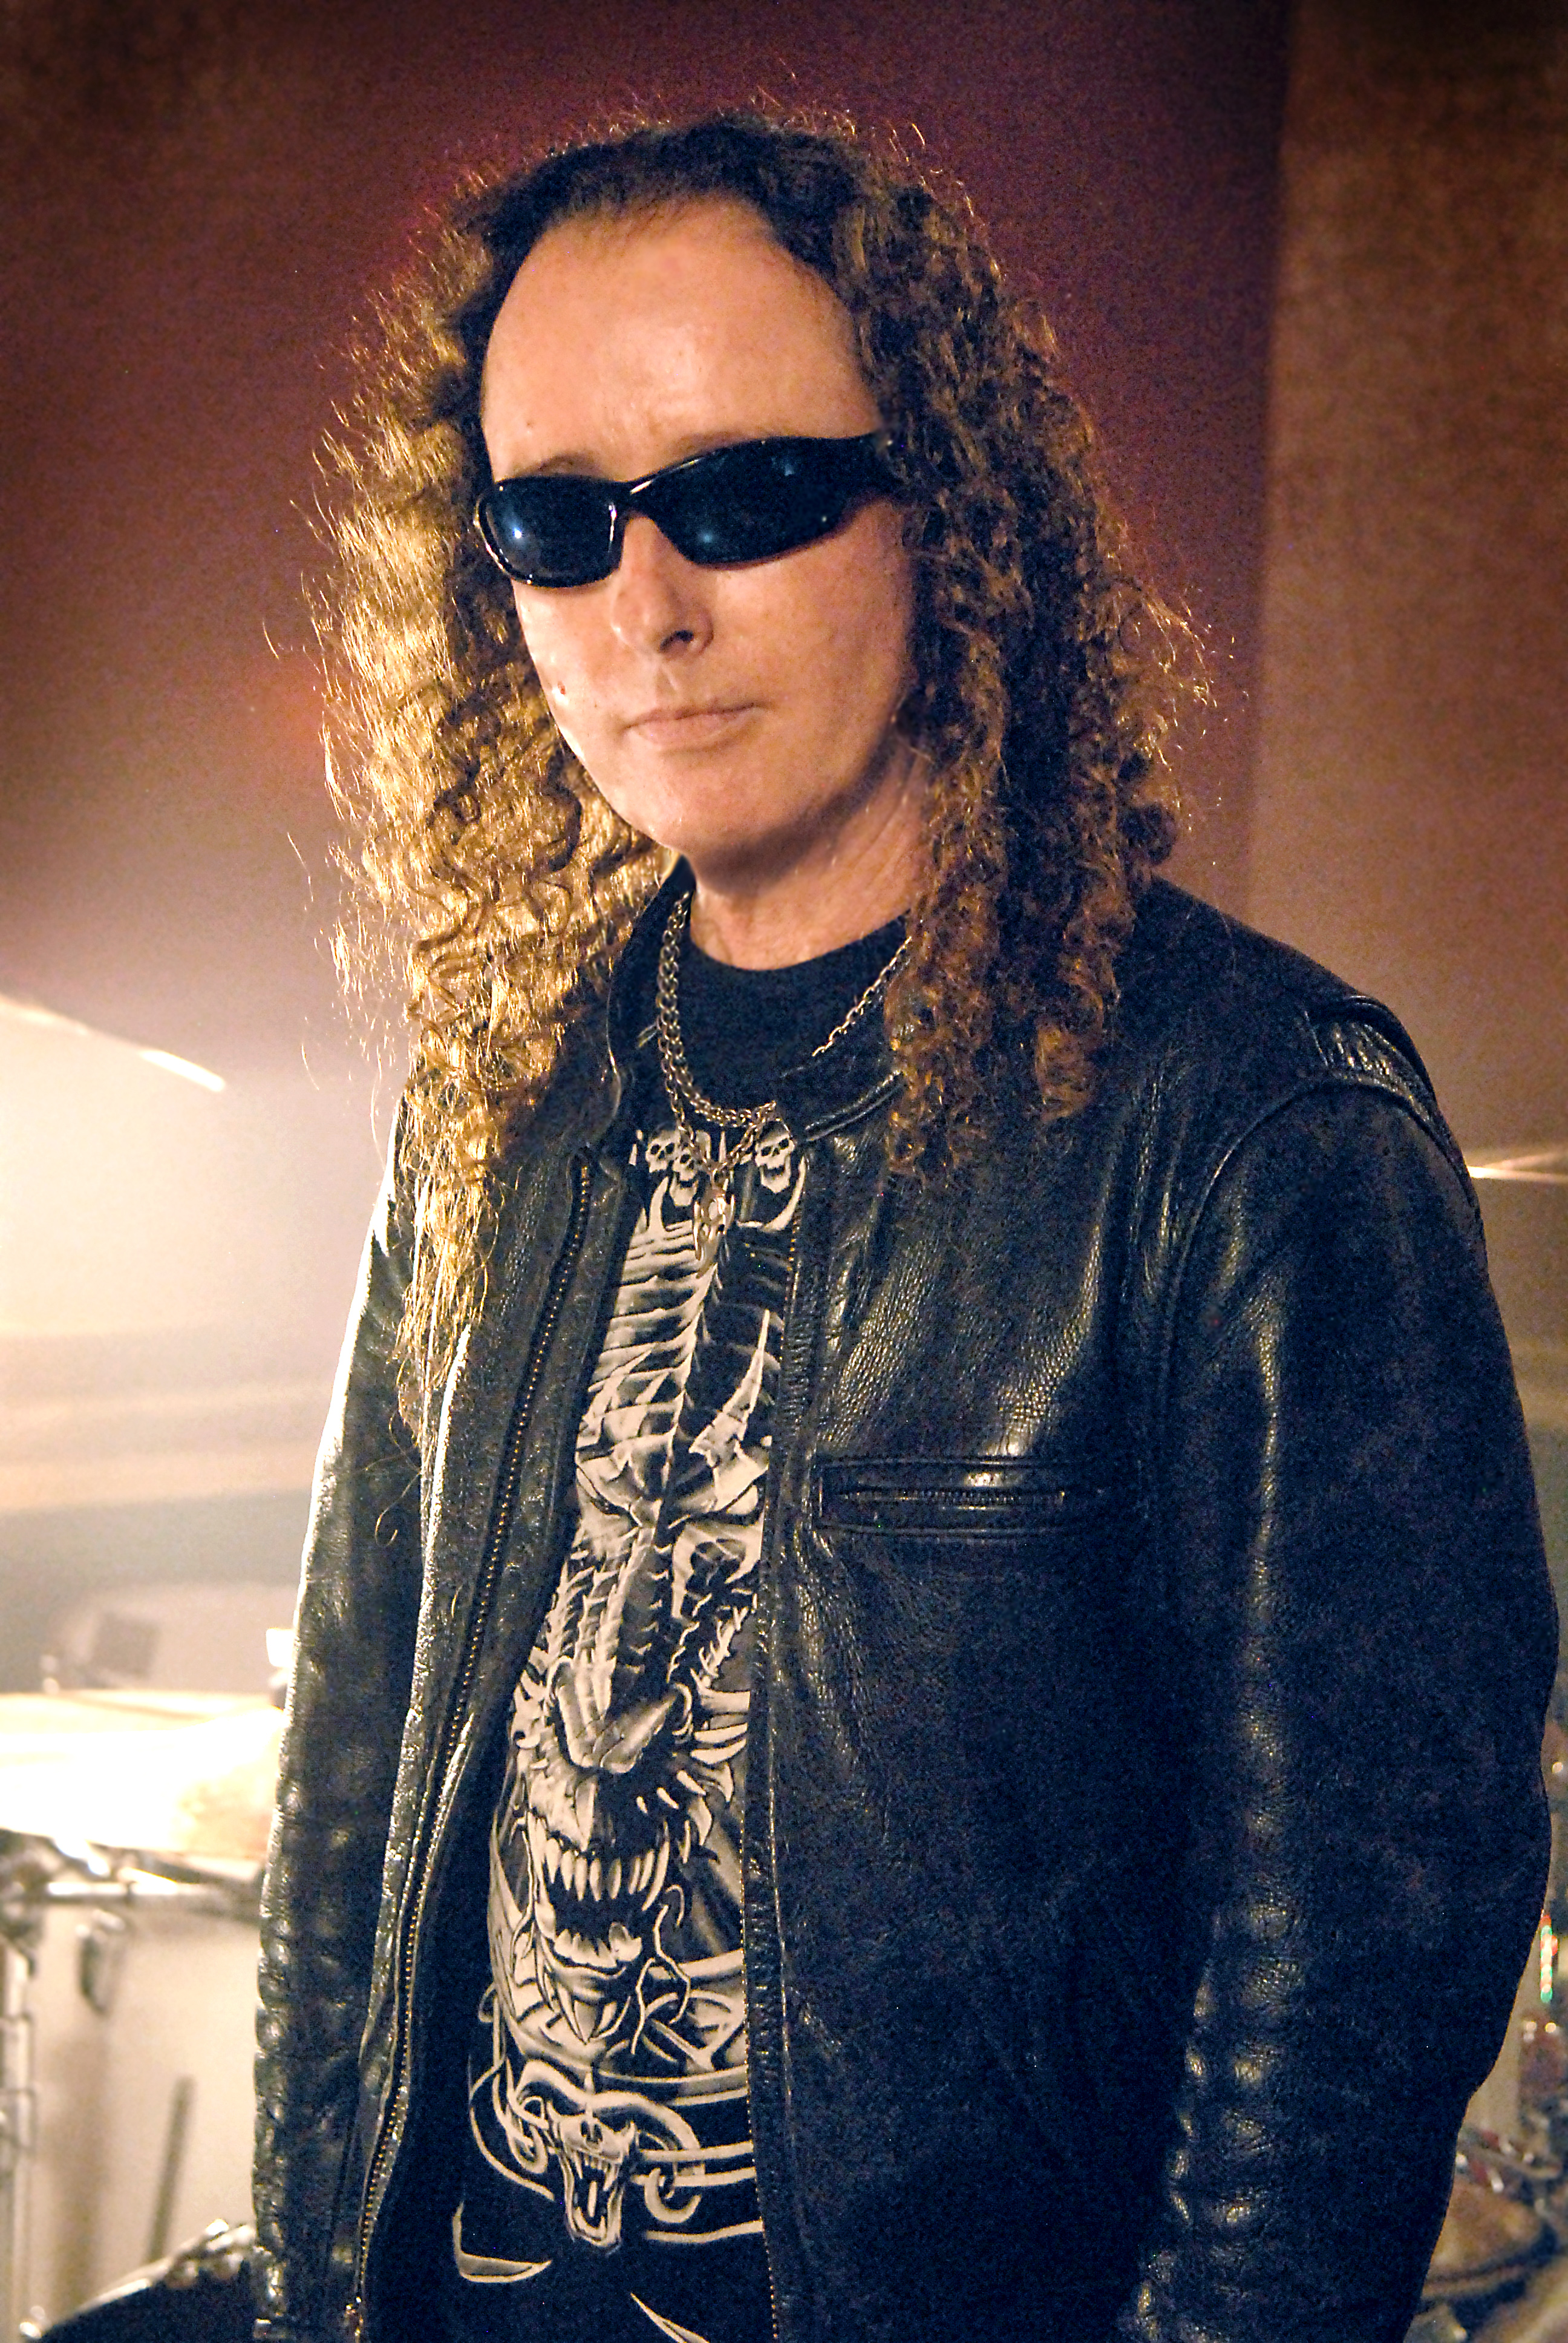 Geoff Thorpe (Vicious Rumors) Interview